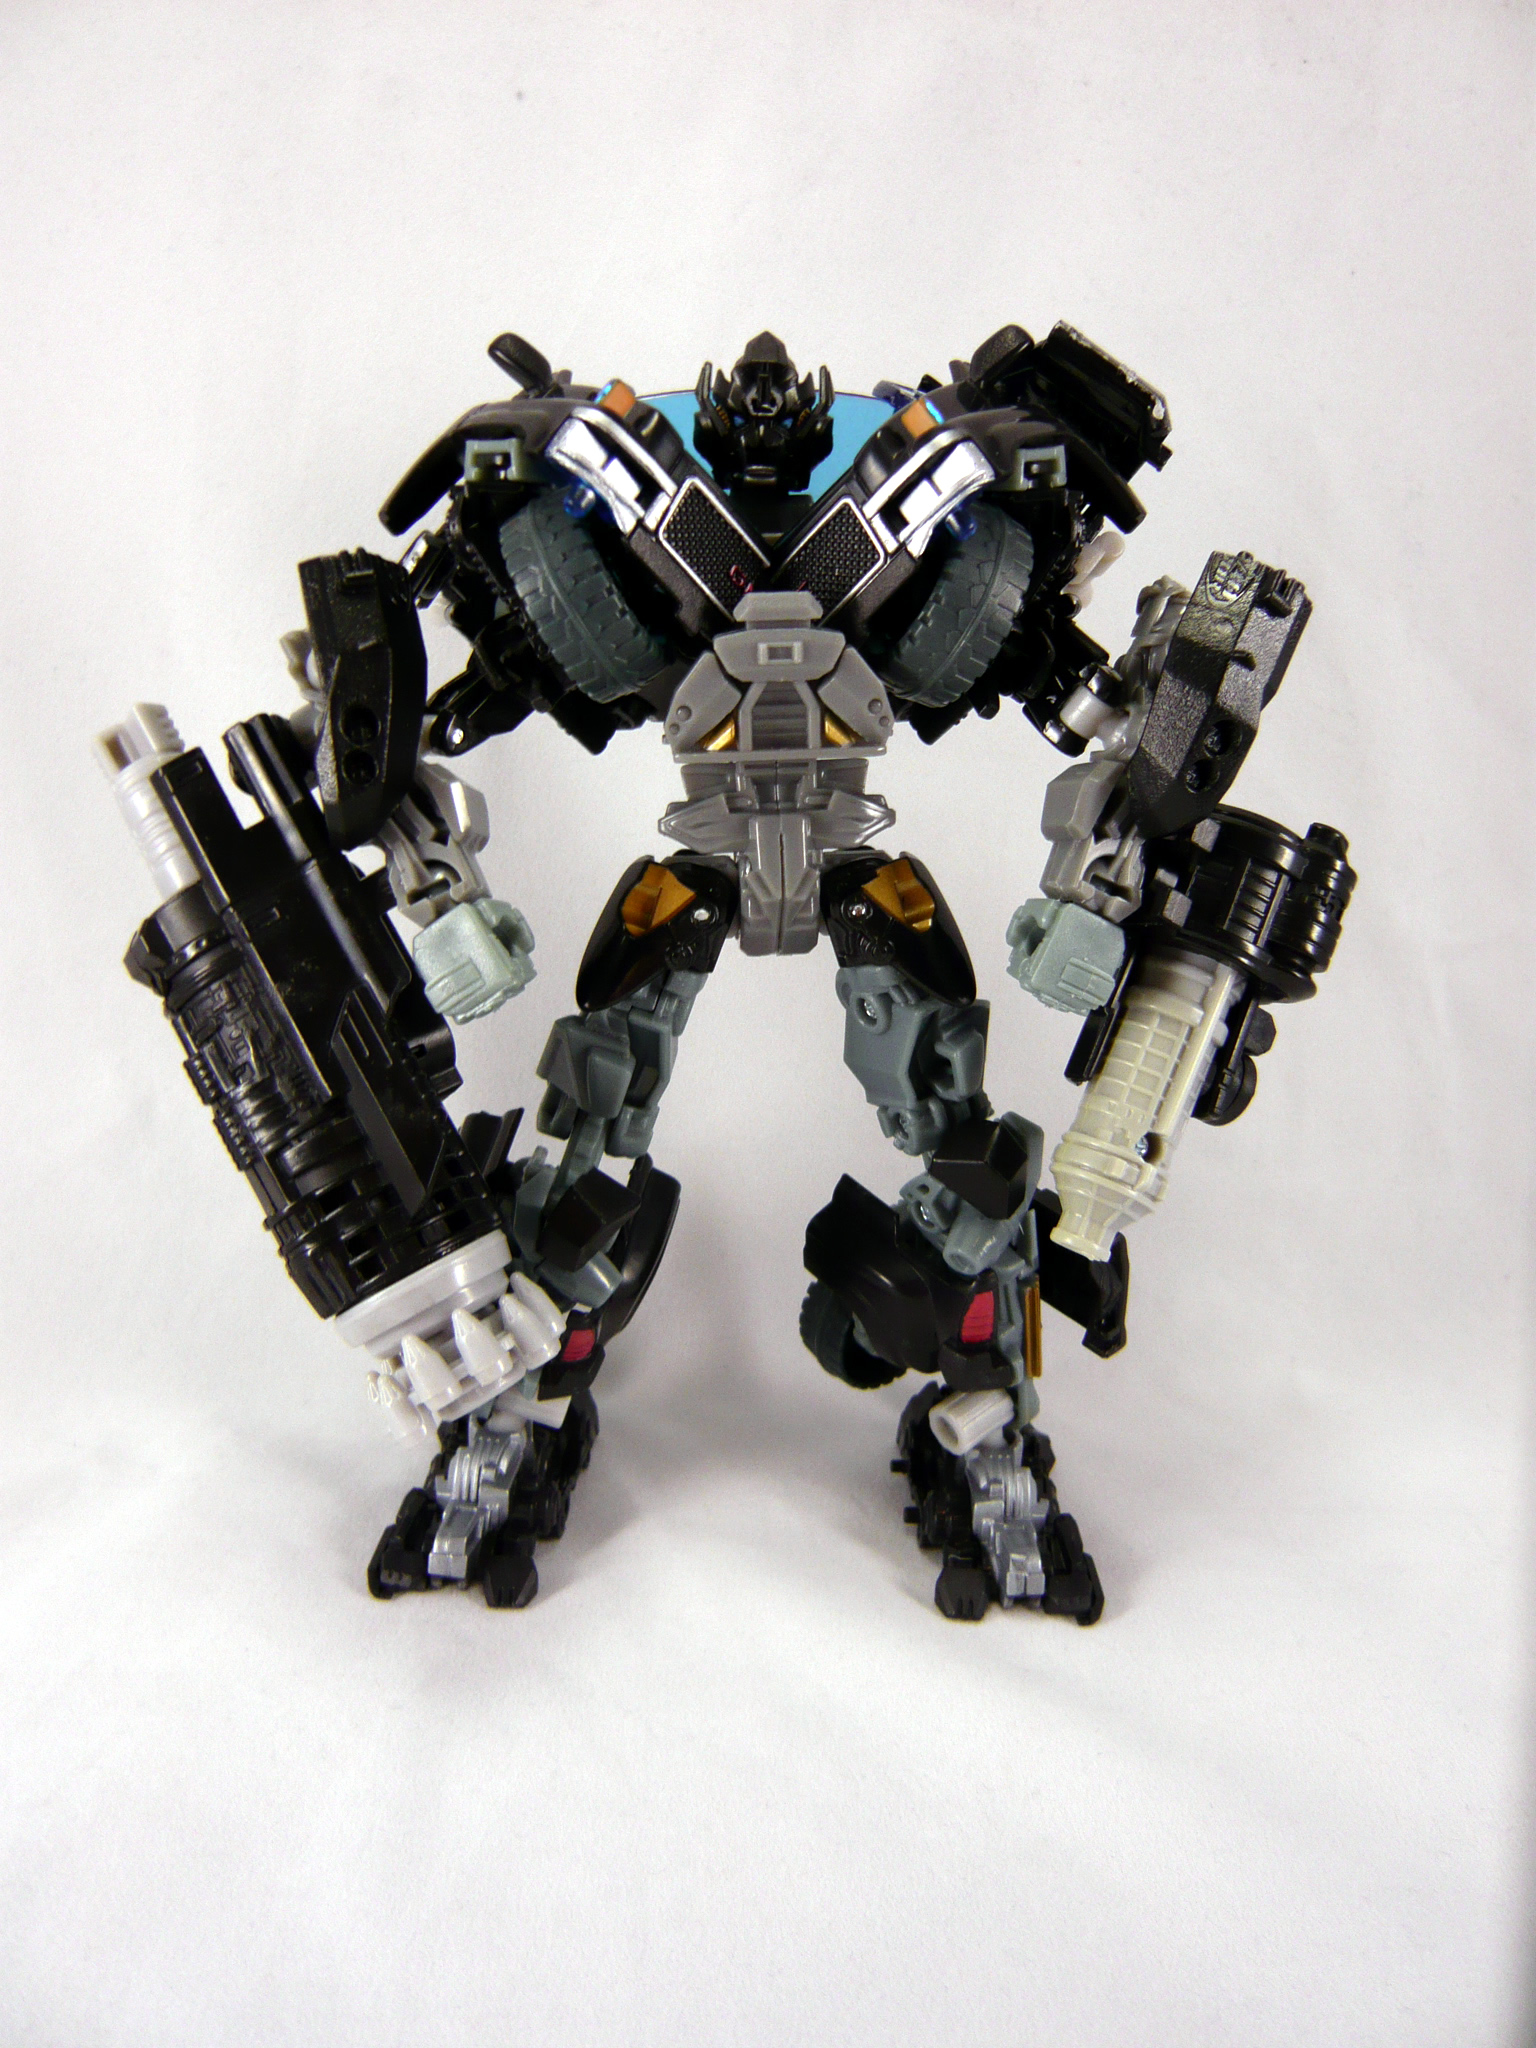 Turorial: Hip/Stomach-Fix-Mod for DOTM Voyager Ironhide-p1130873.jpg